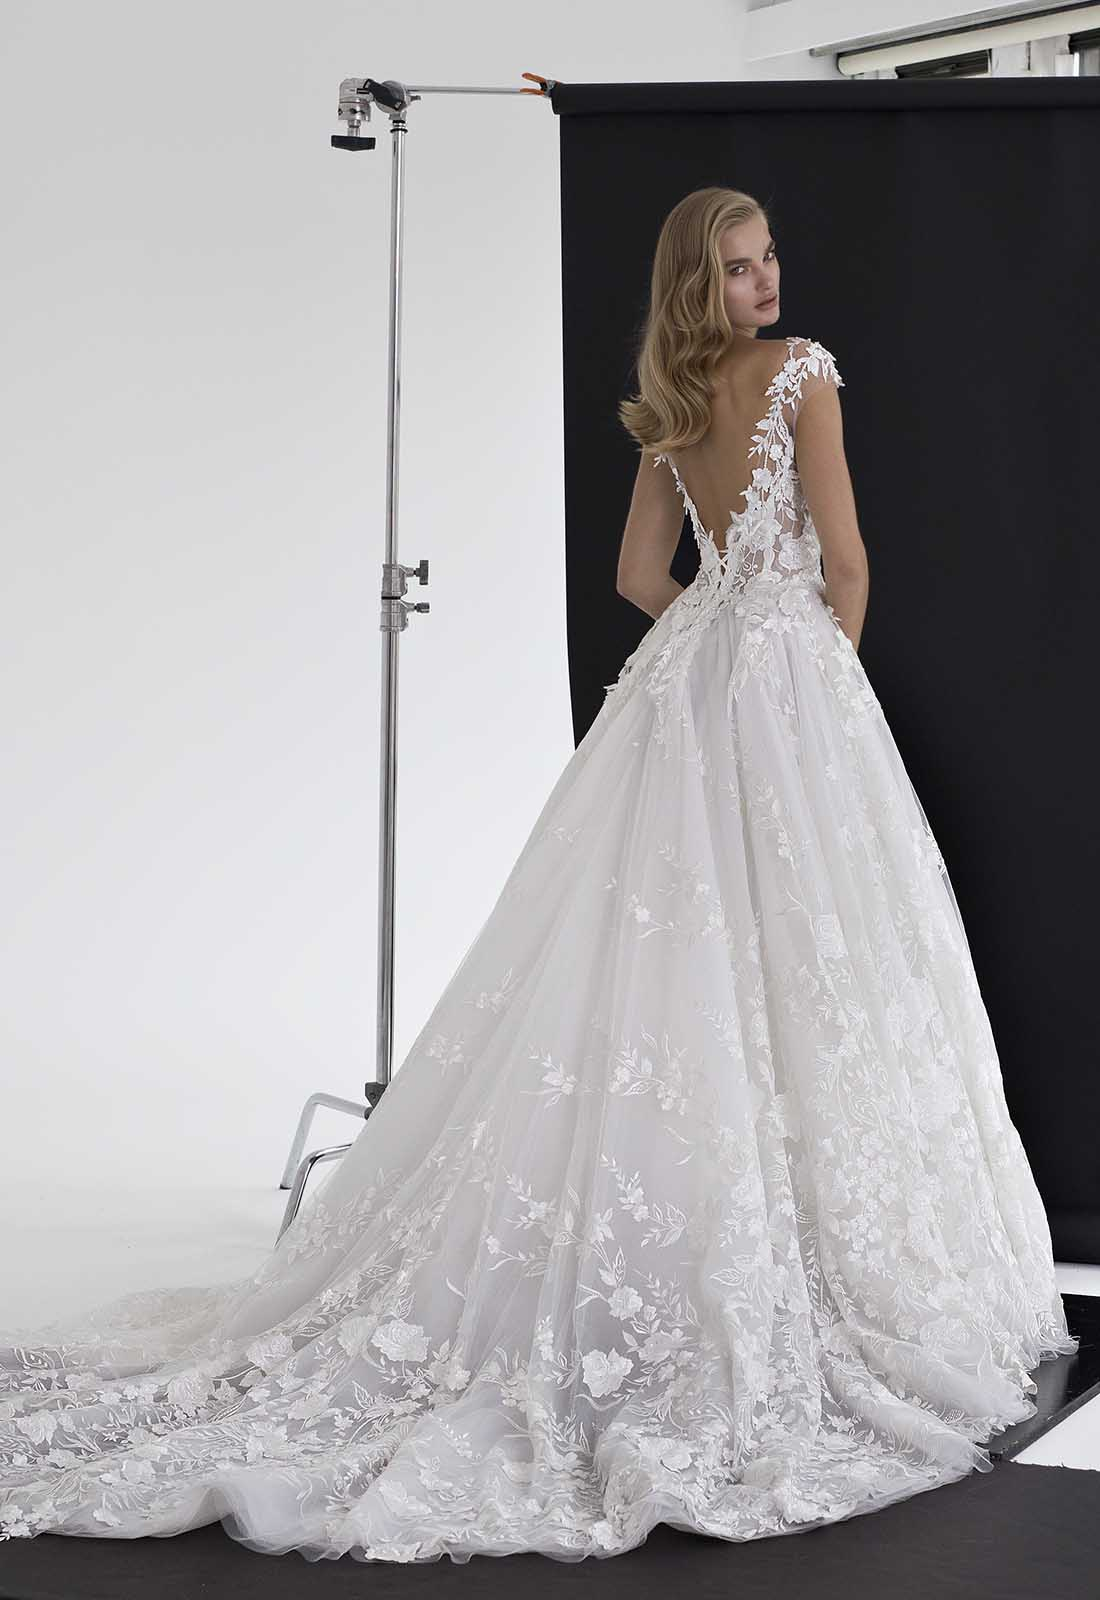 Pnina Tornai Ball Gown Wedding Dresses: Floral Applique Tulle Ball Gown